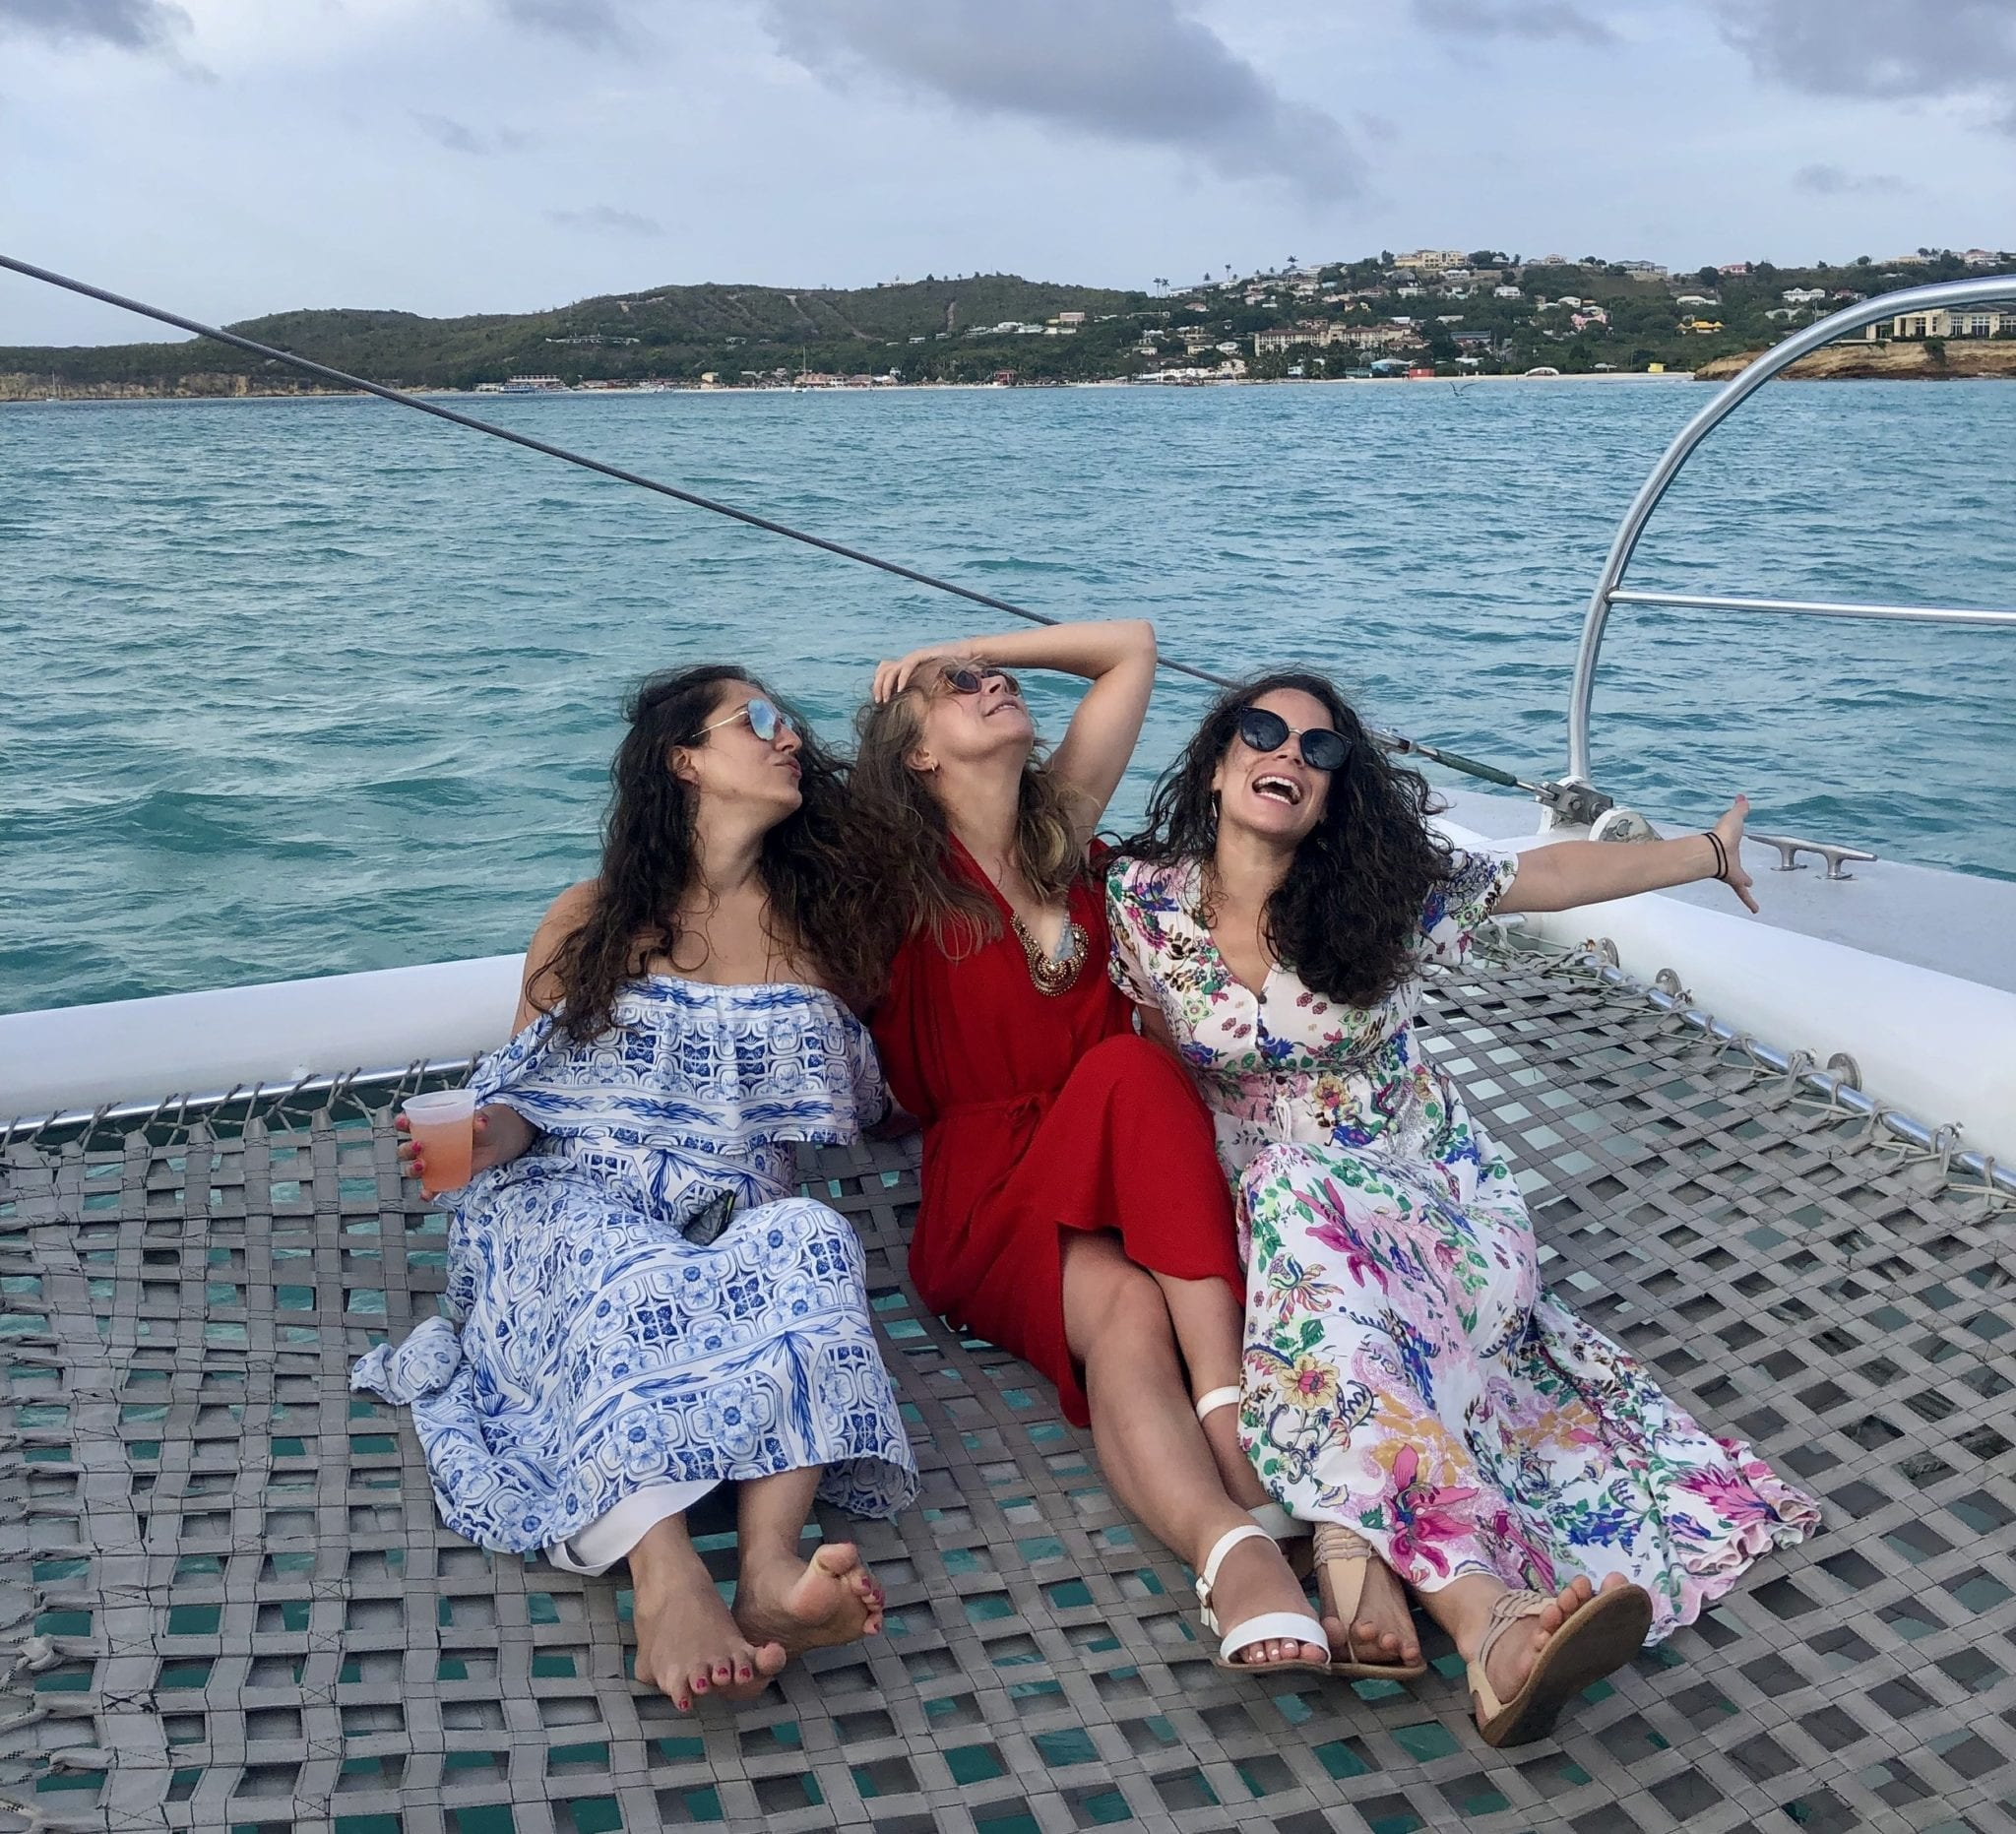 Three girls in floral patterned dresses sitting on the net of the catamaran, looking off to the side and making goofy kissy faces.